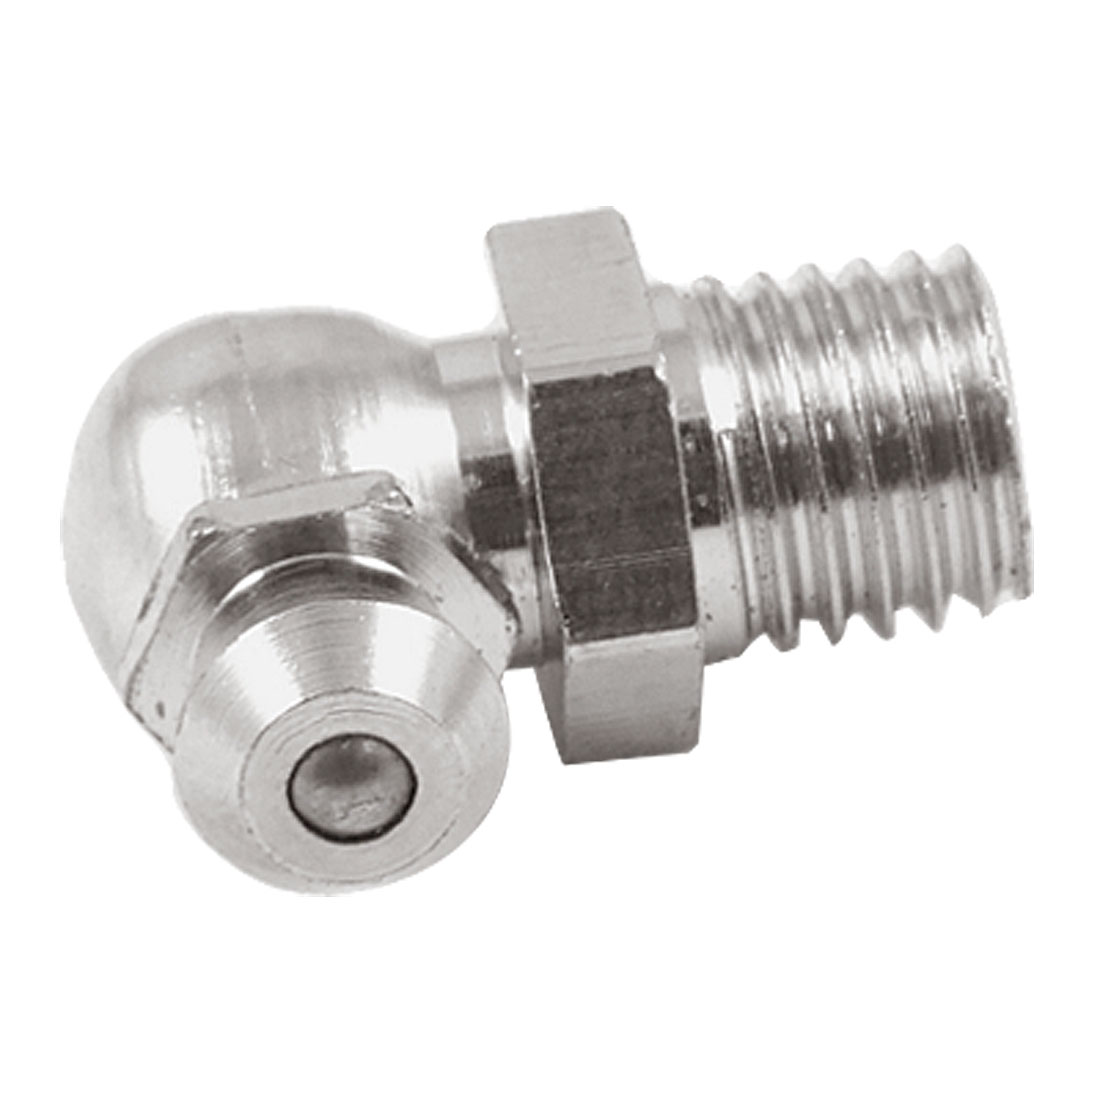 8mm M8 Male Thread 90 Degree Angle Grease Nipple Zerk Fitting